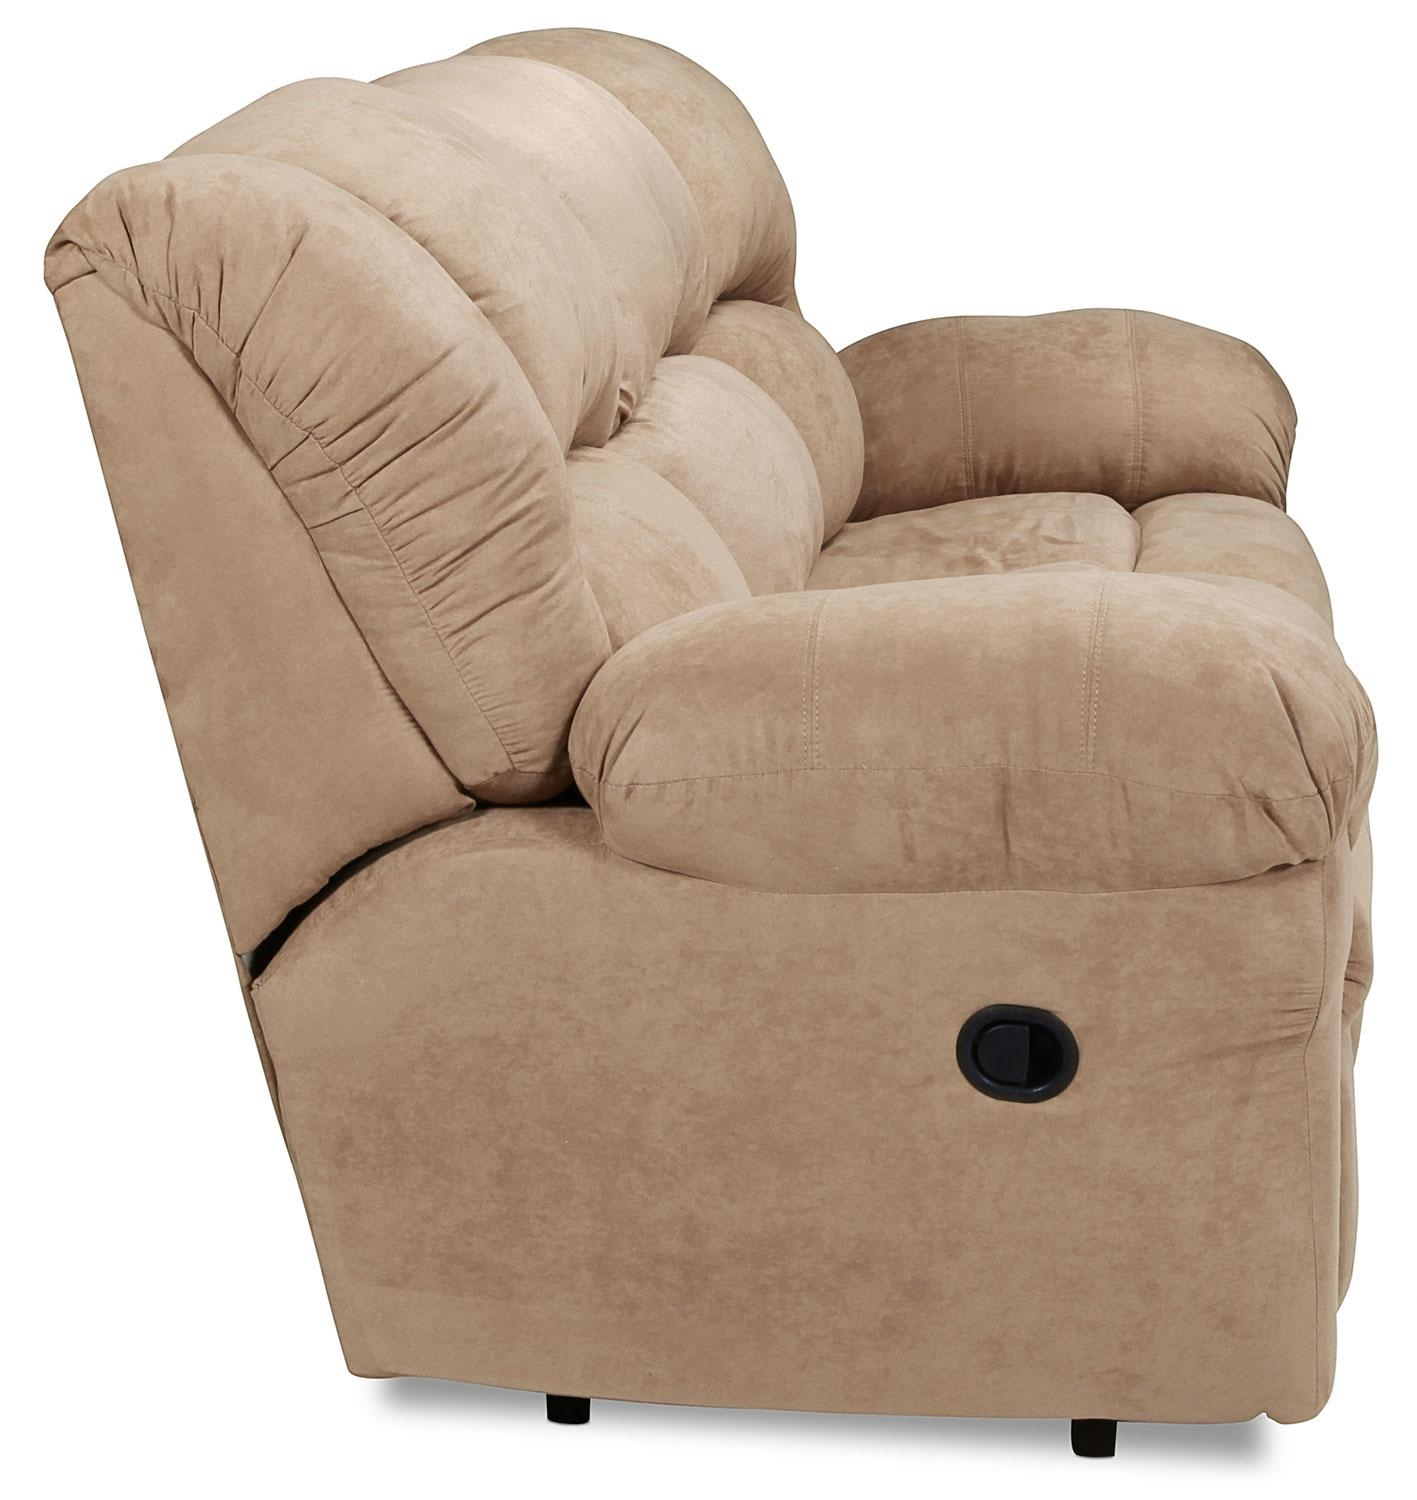 Decker Reclining Sofa – Camel | Levin Furniture Within Recliner Sofa Chairs (Image 9 of 20)